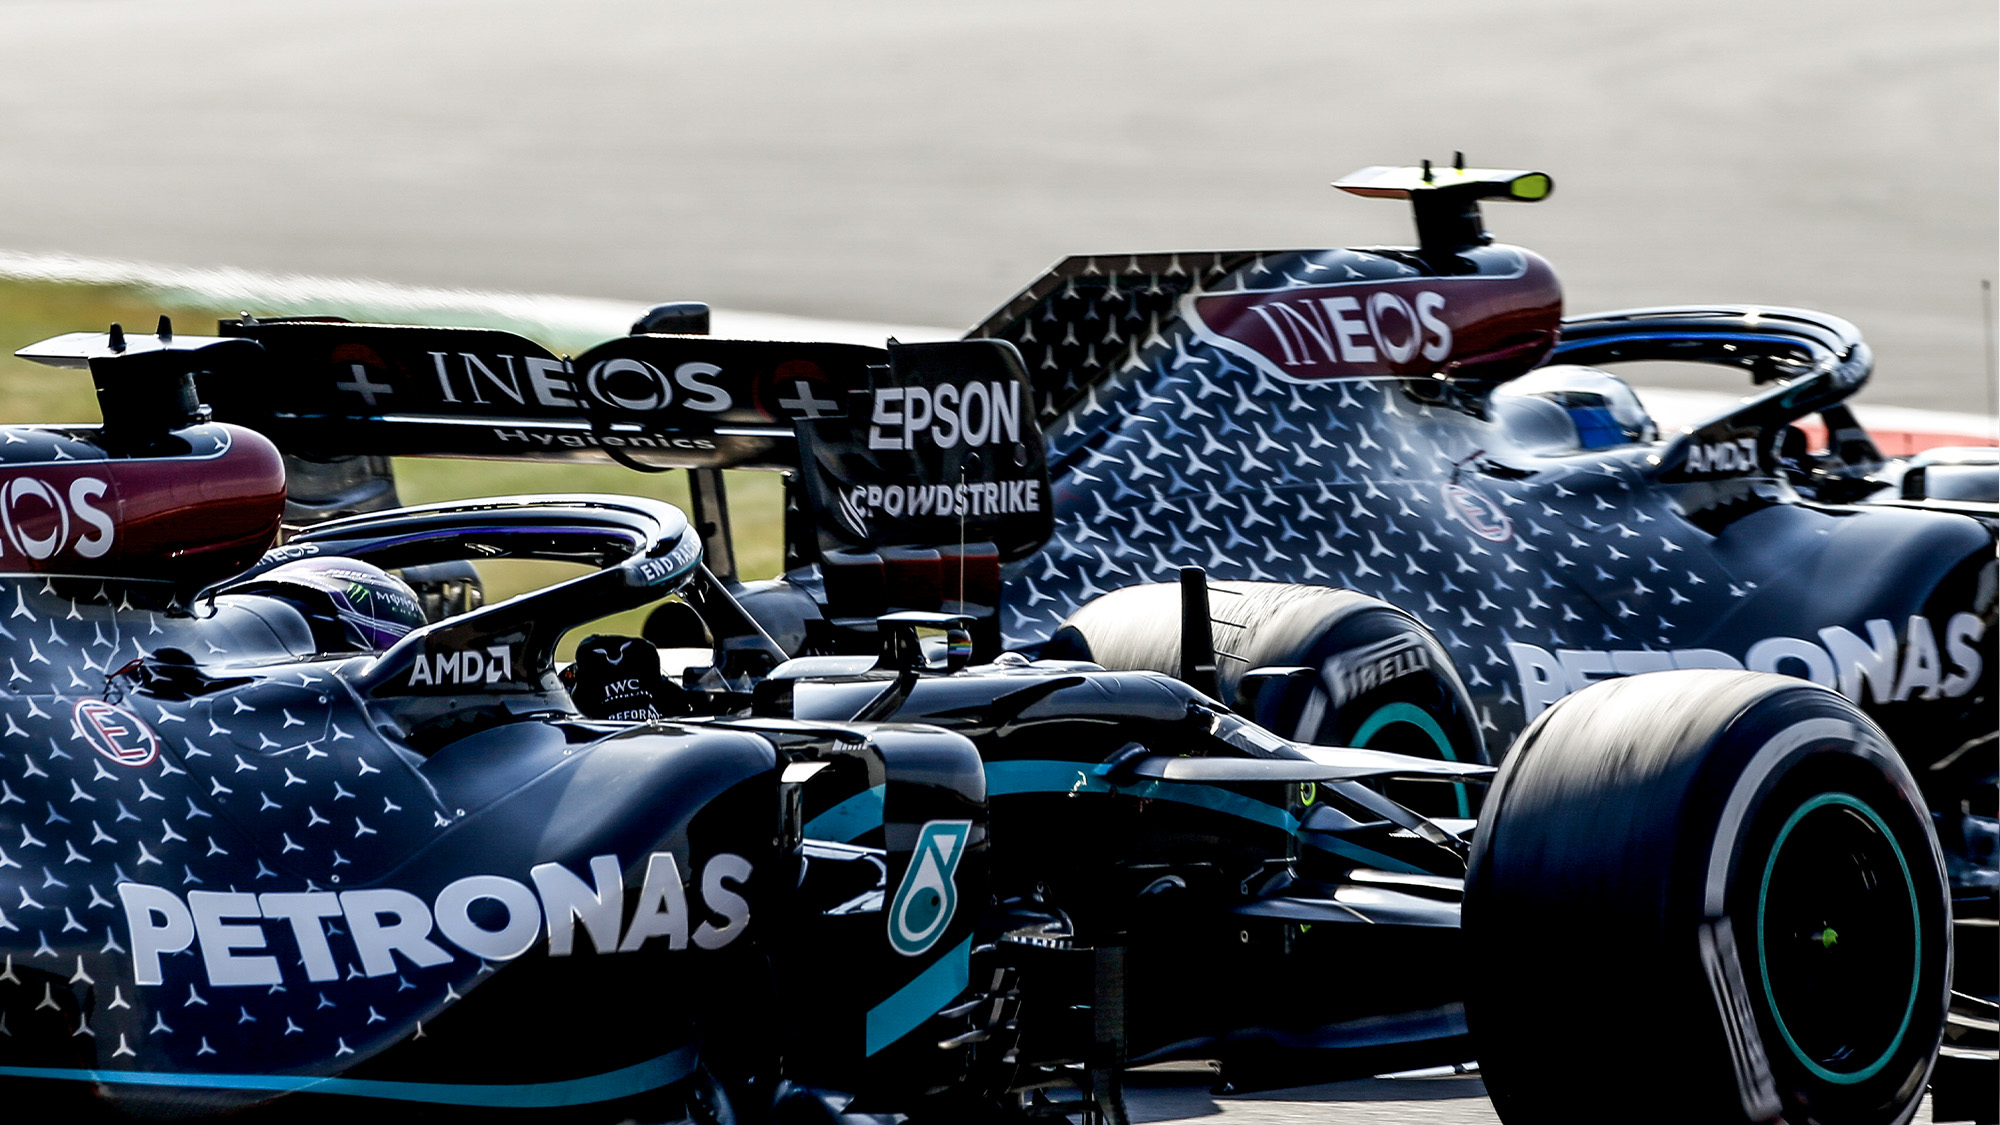 Lewis Hamilton moves to overtake Valtteri Bottas at the end of the 2020 F1 70th Anniversary Grand Prix